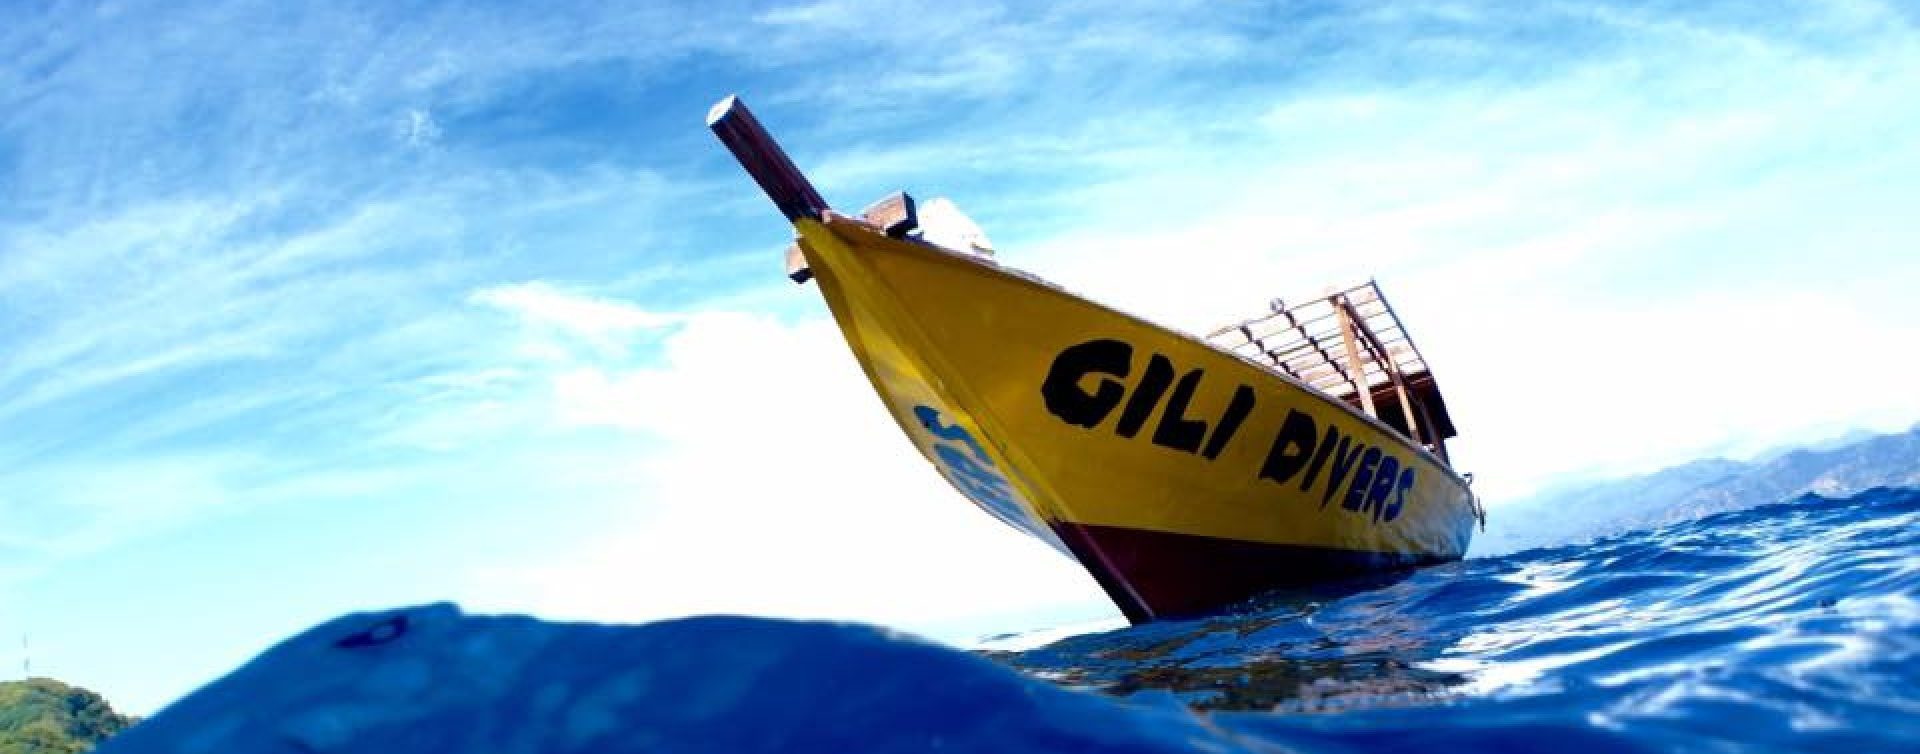 What to do on Gili Air